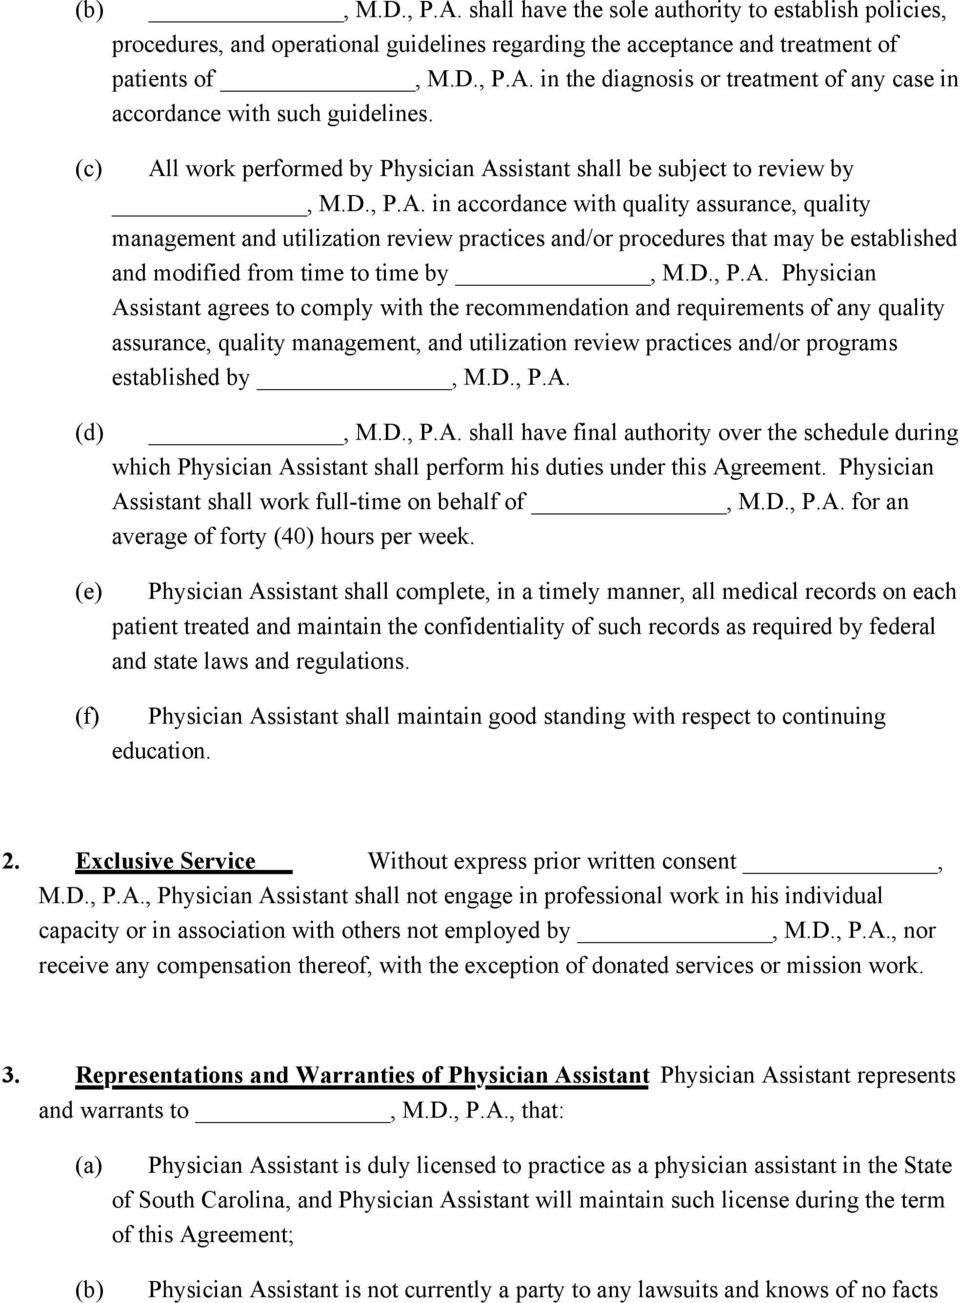 Physician Assistant Employment Agreement Terms Of Agreement Pdf